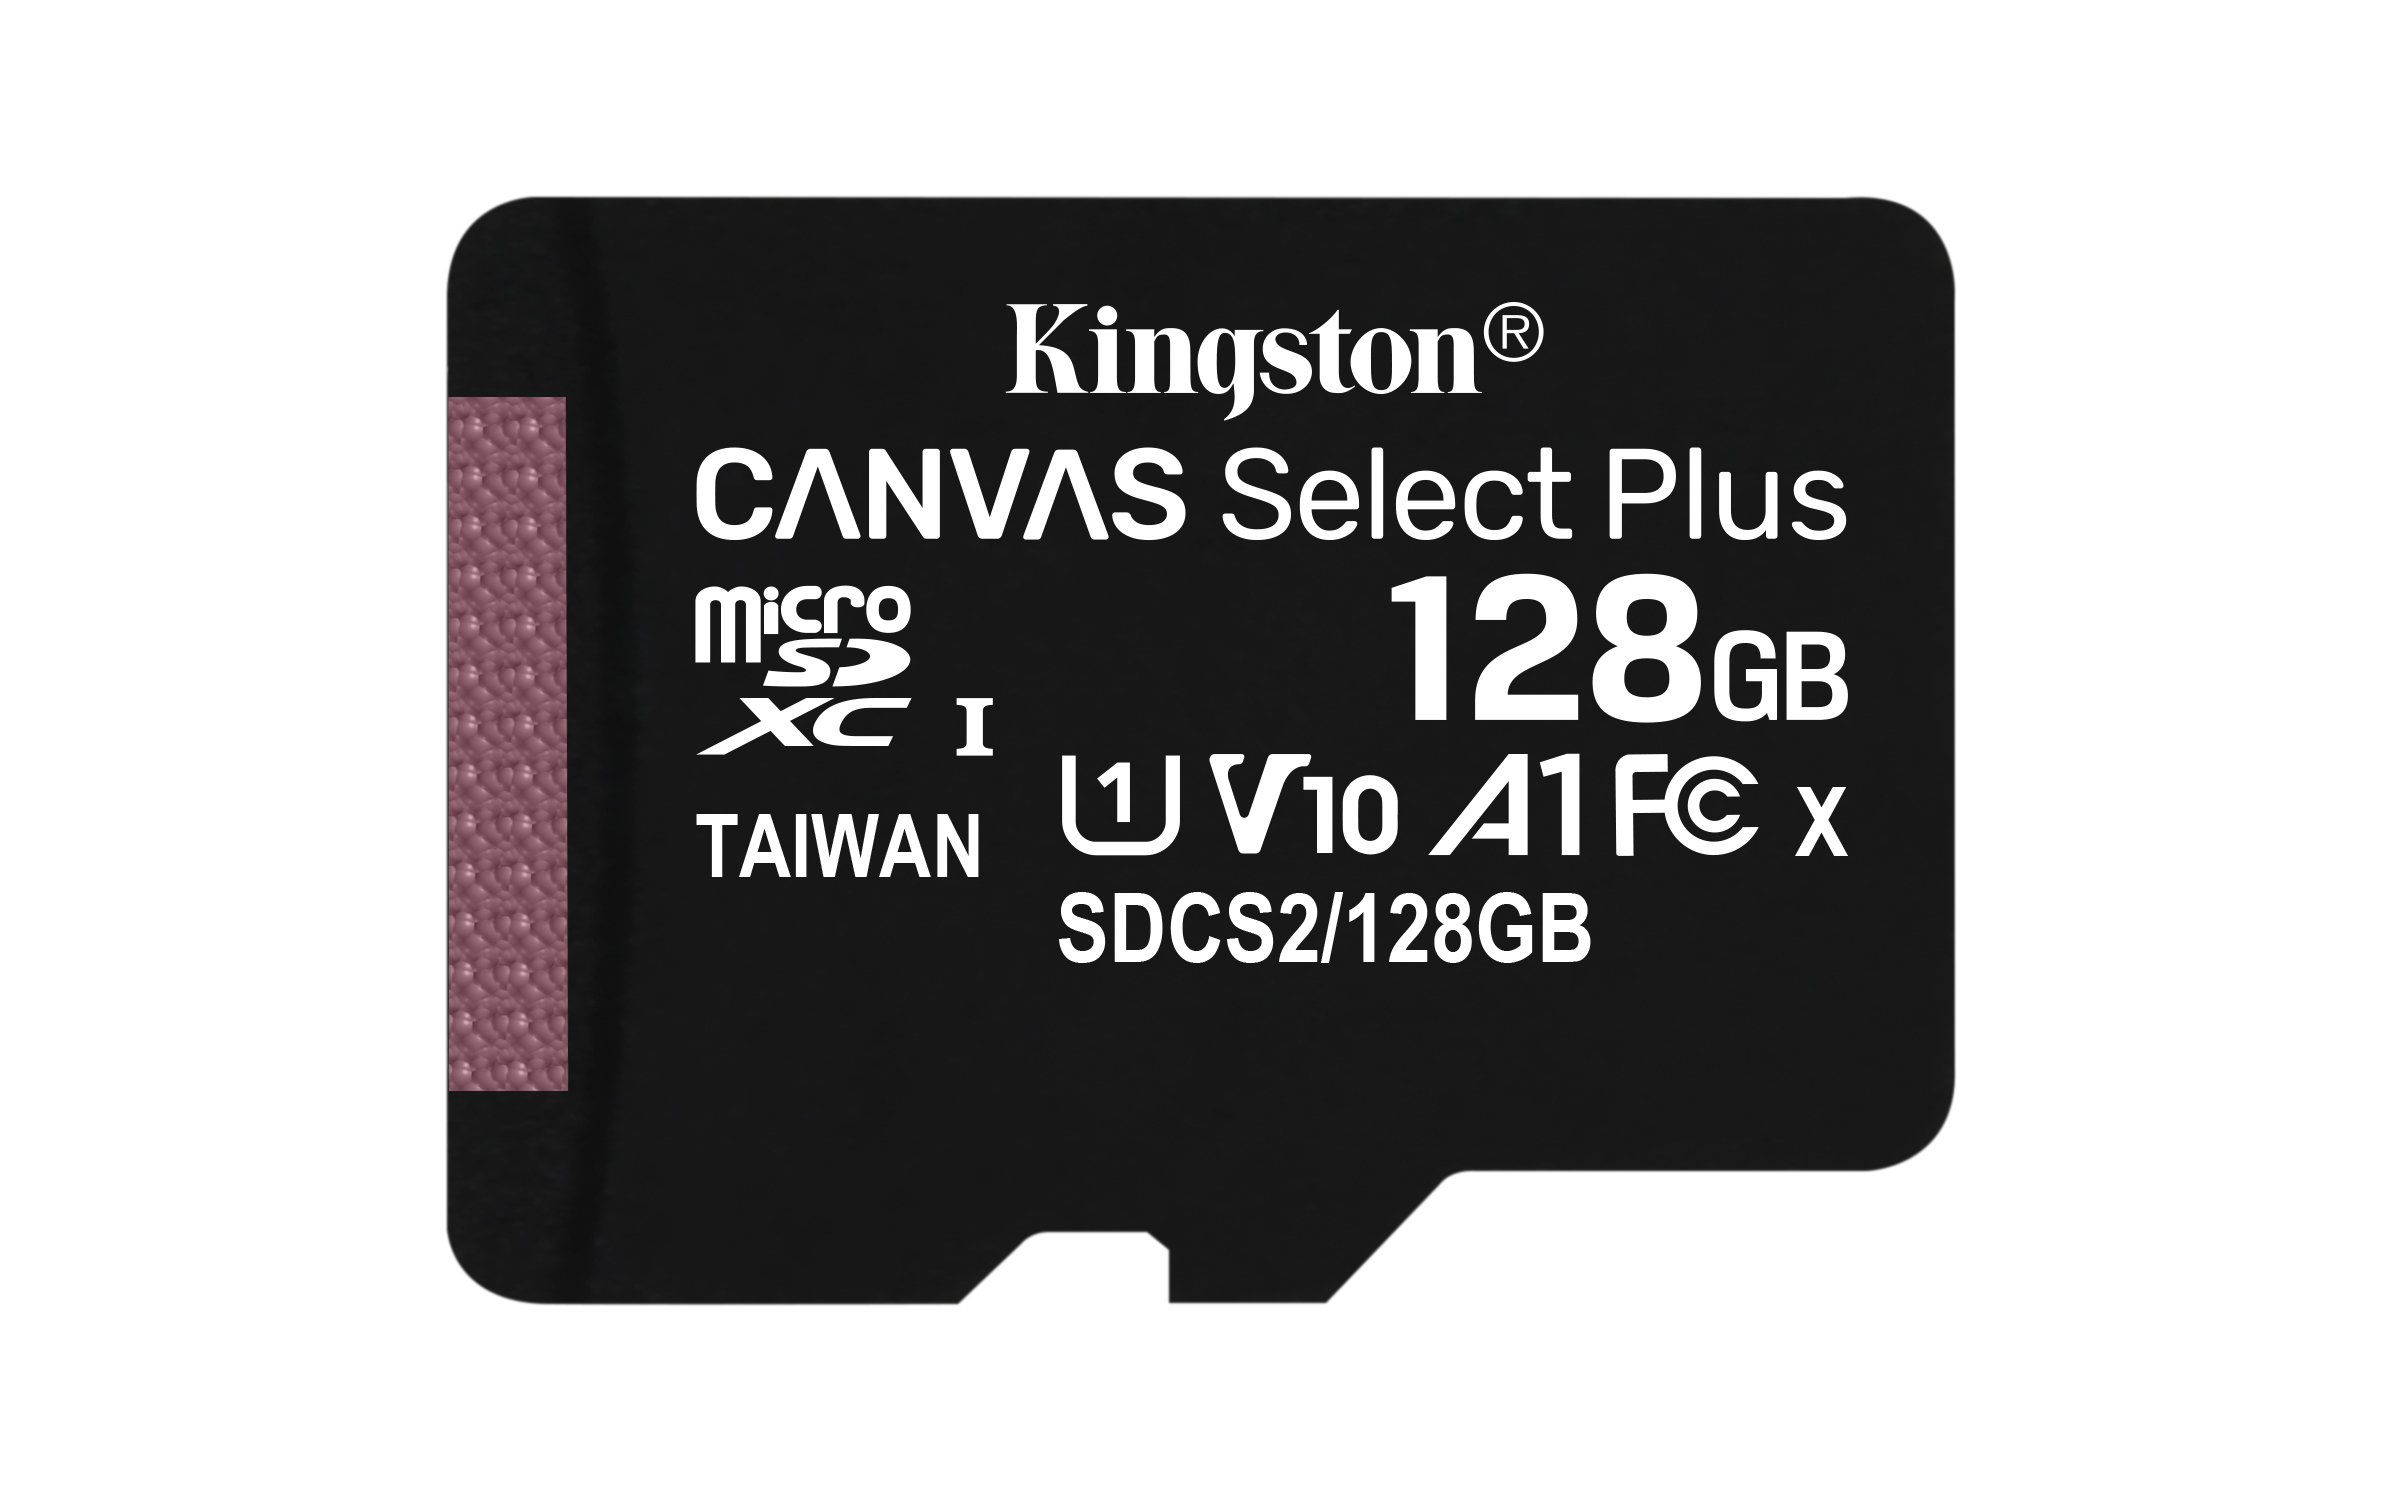 CANVAS SELECT PLUS MEMORIA FLASH 128 GB MICROSDXC CLASE 10 UHS-I